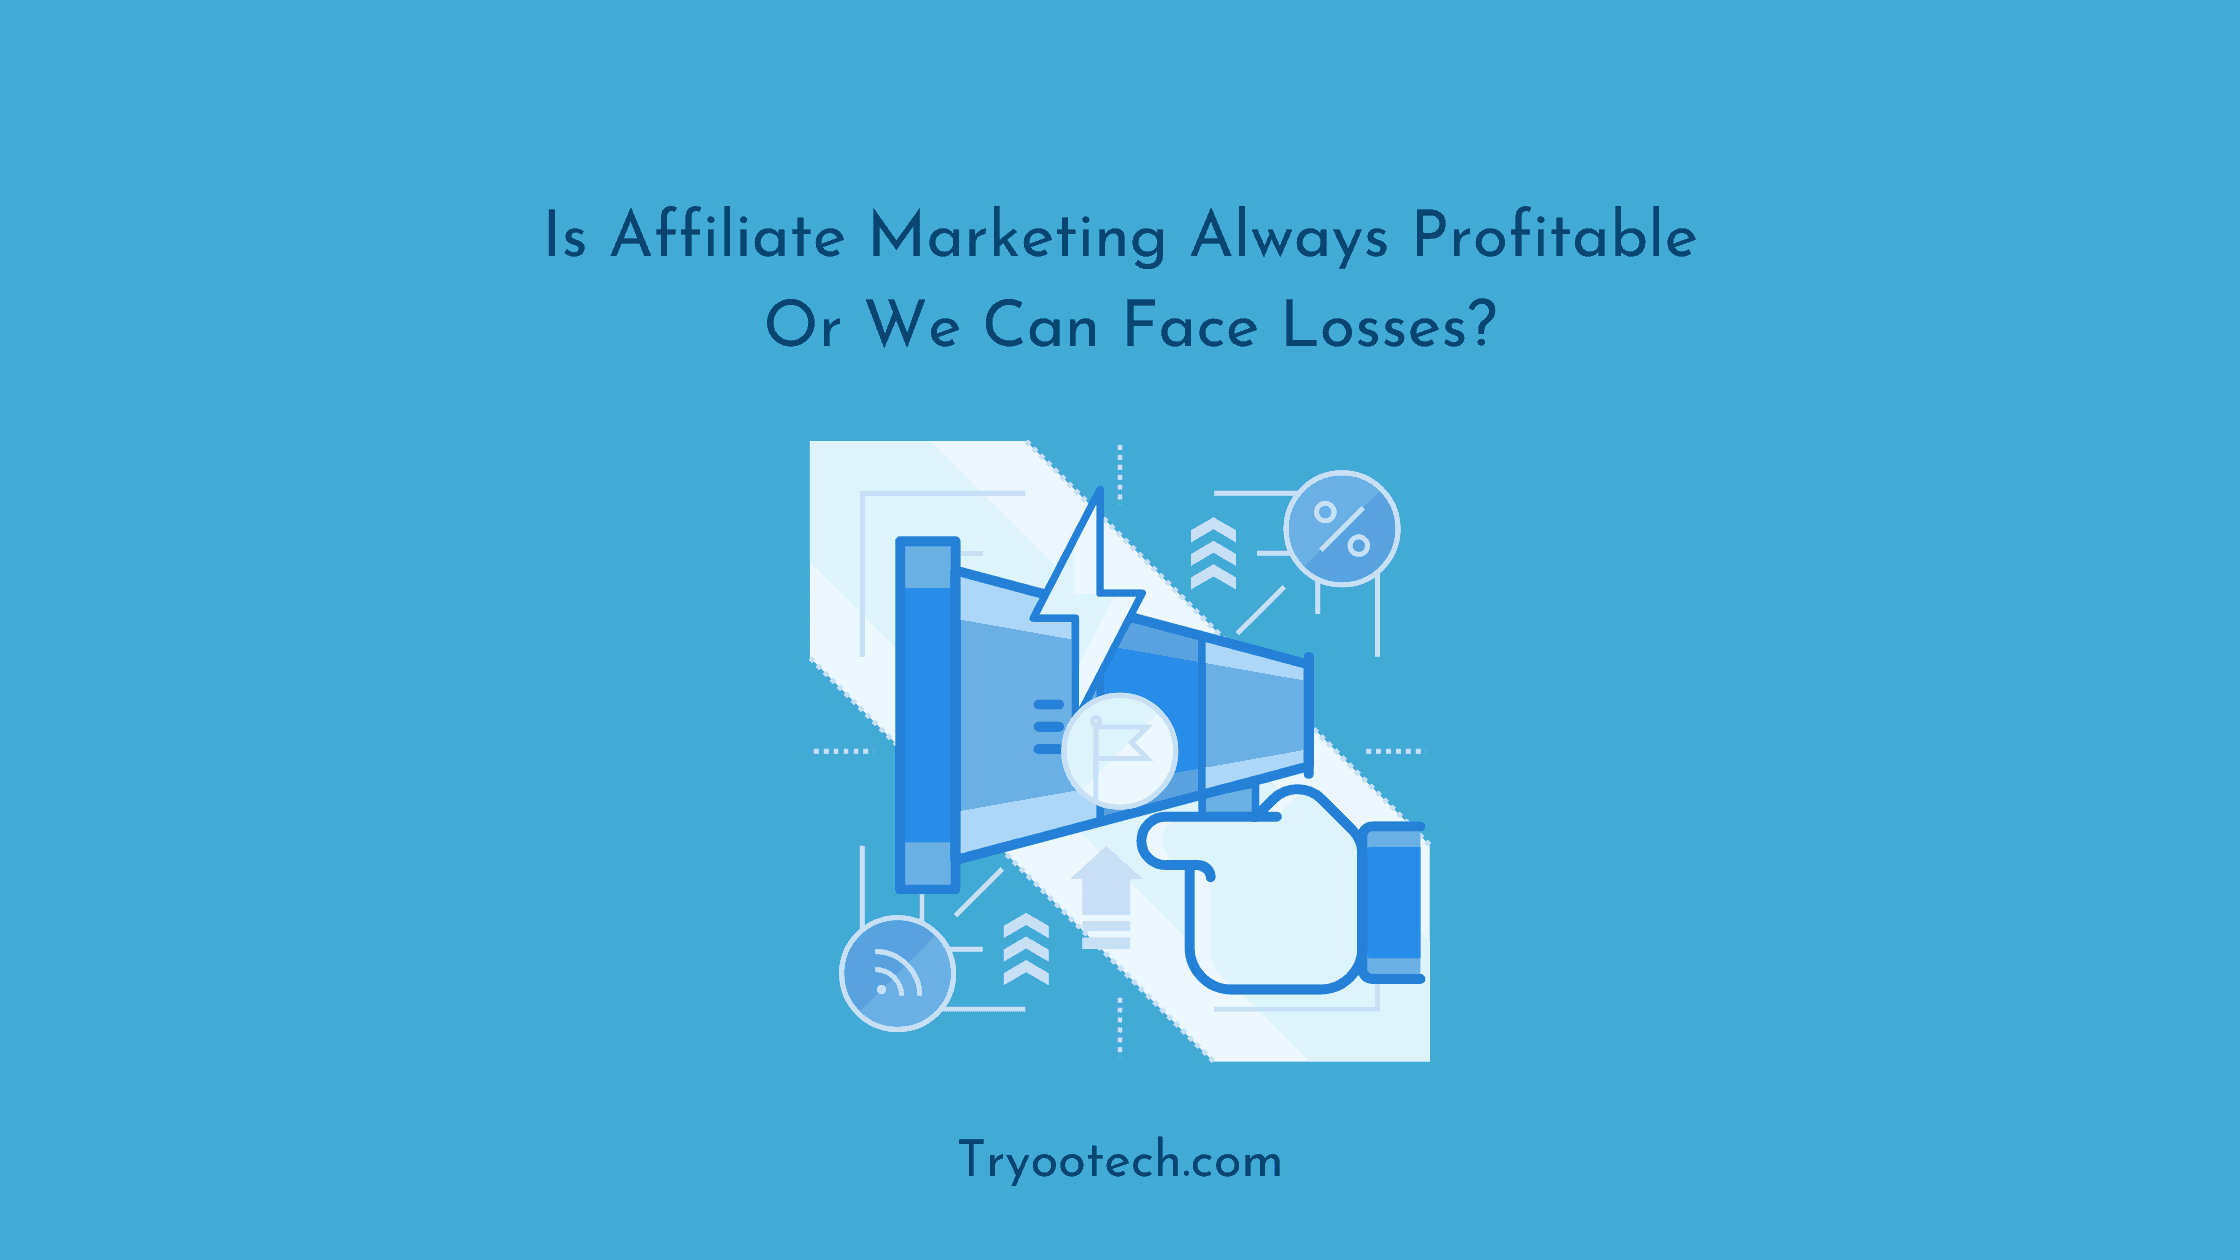 Is Affiliate Marketing Always Profitable Or We Can Face Losses